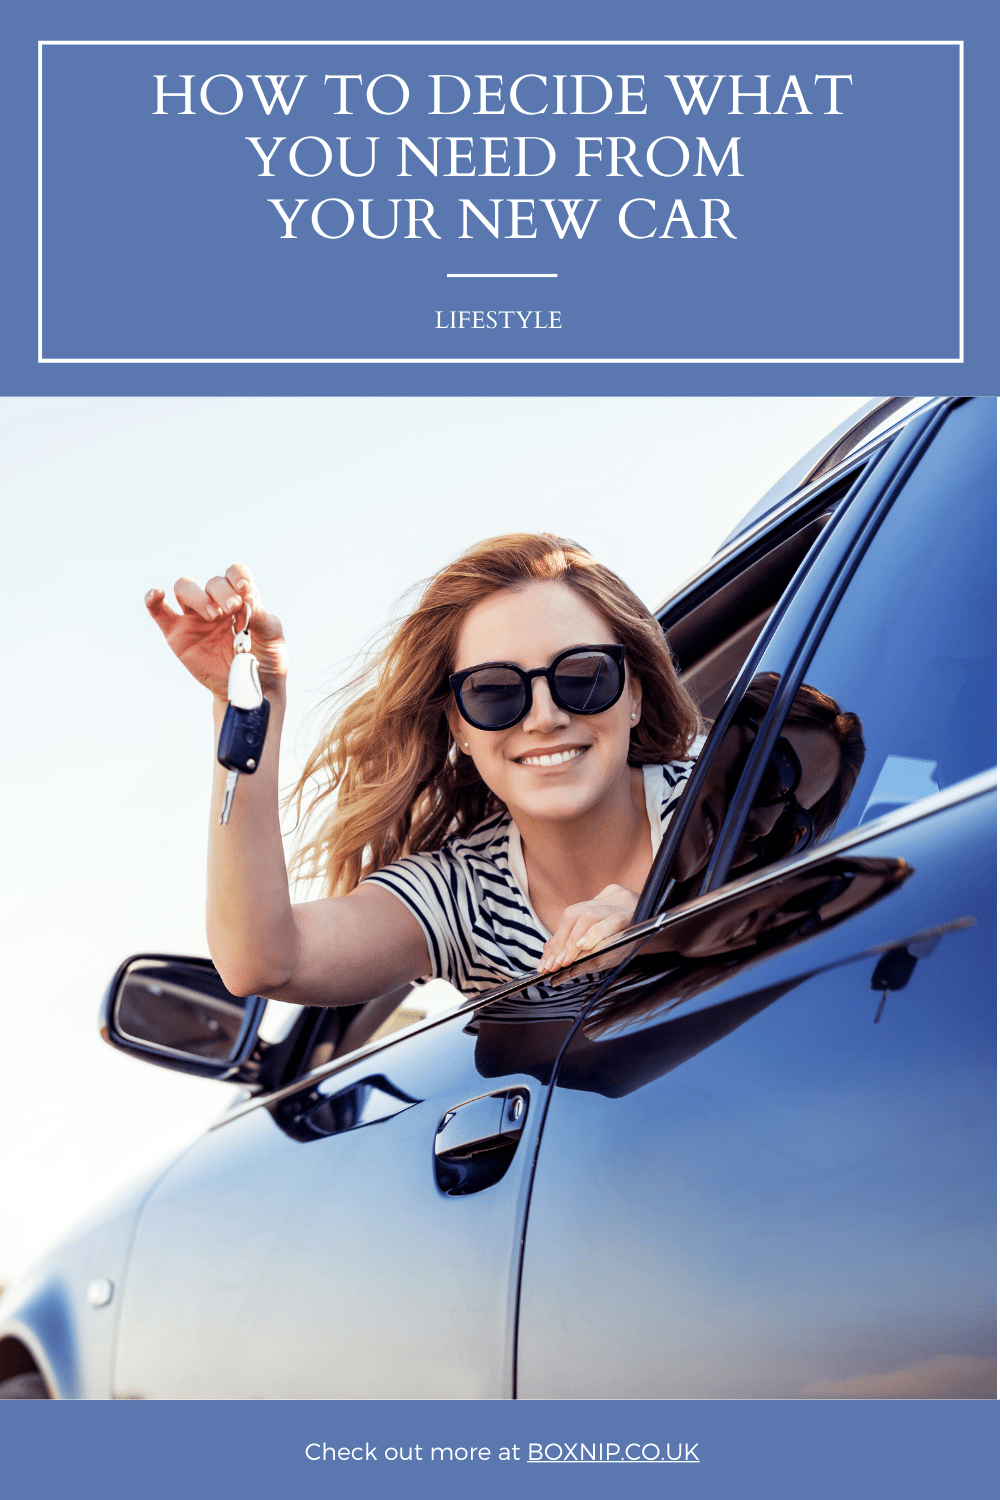 How to Decide What You Need From Your New Car